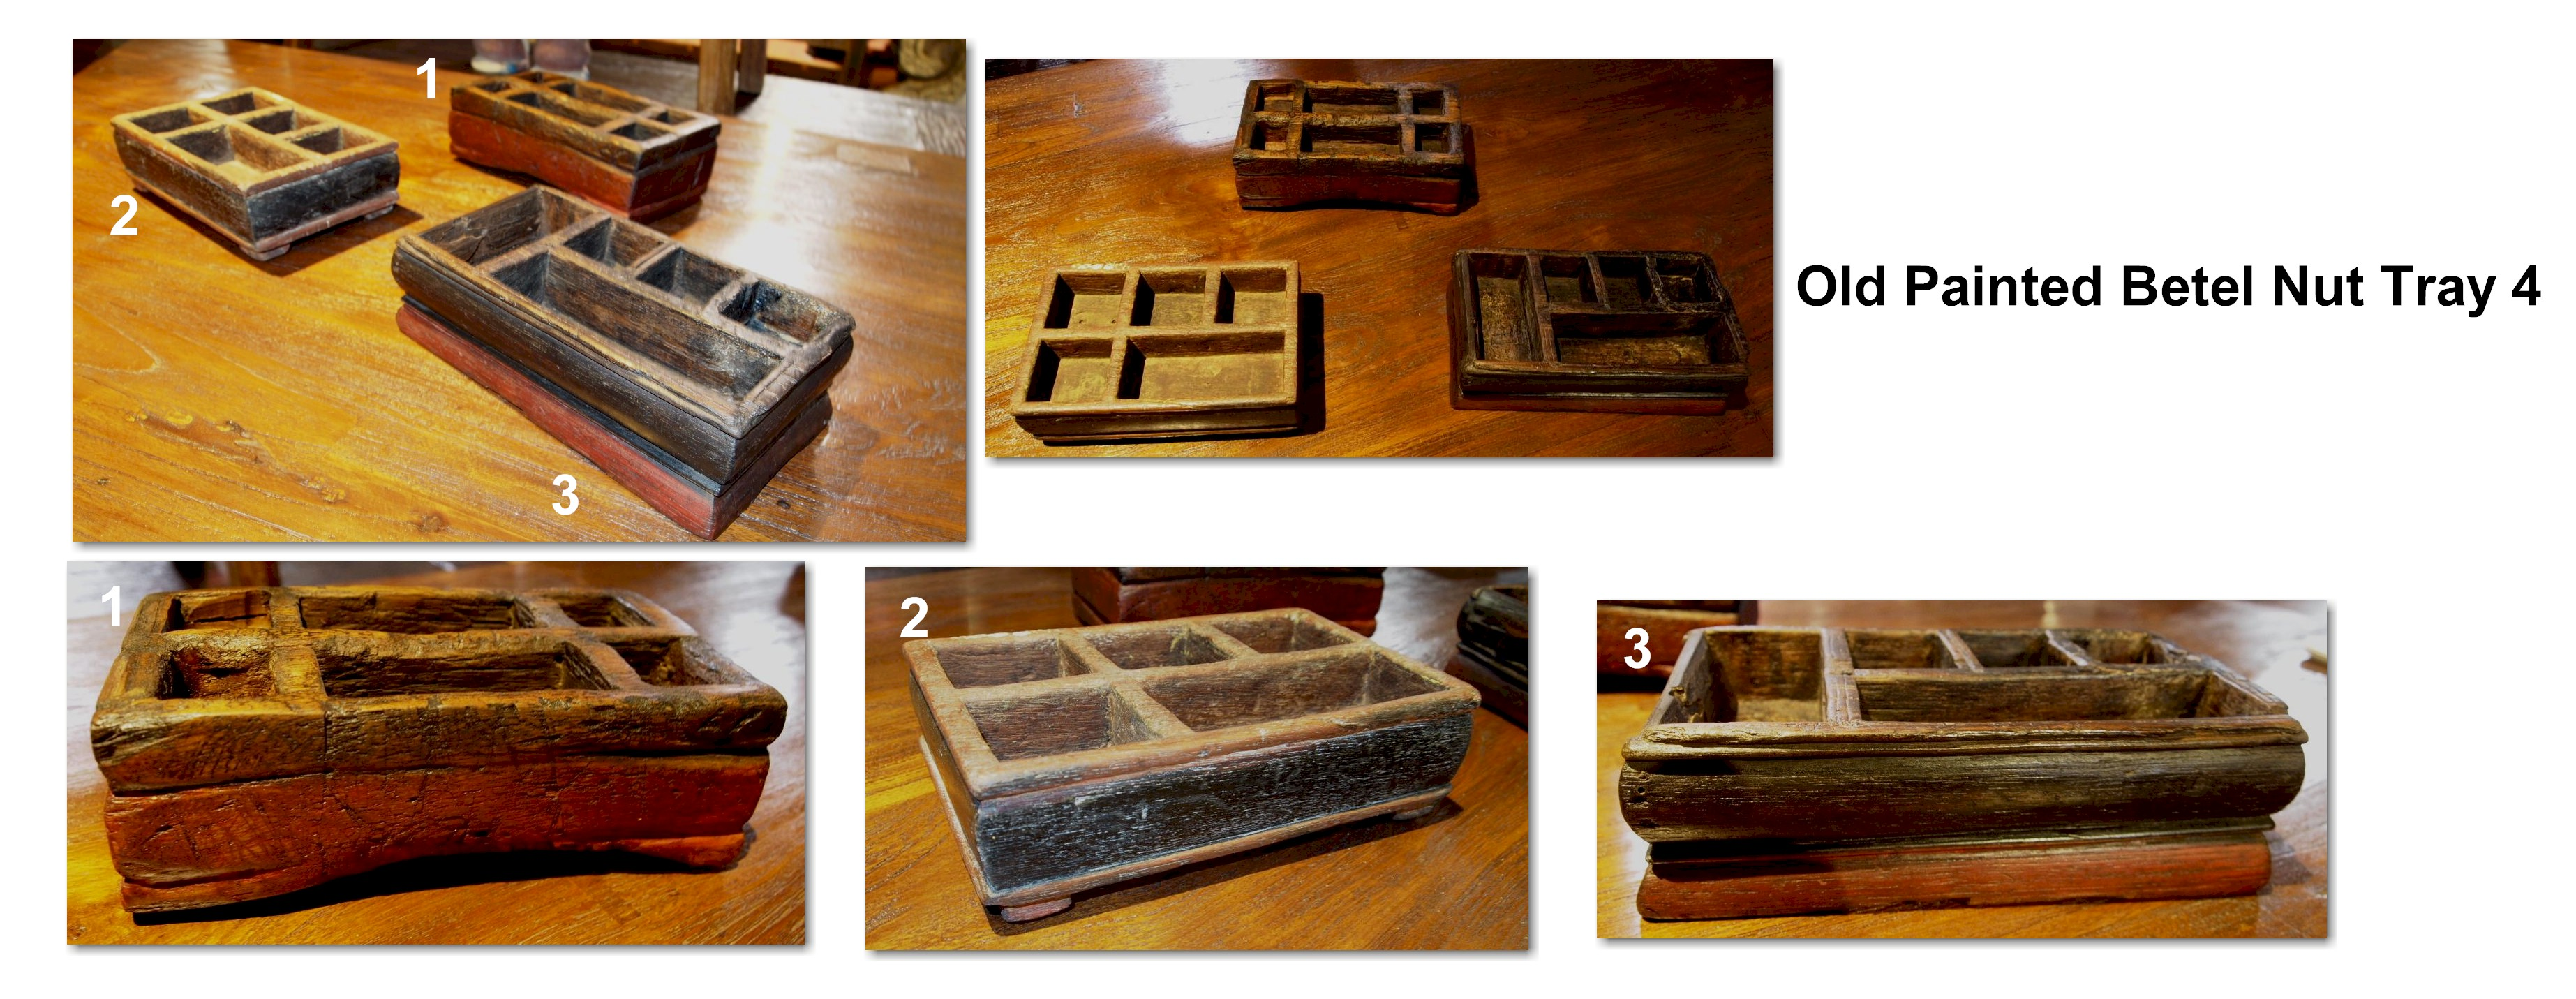 Old Painted Betel Nut Tray 4